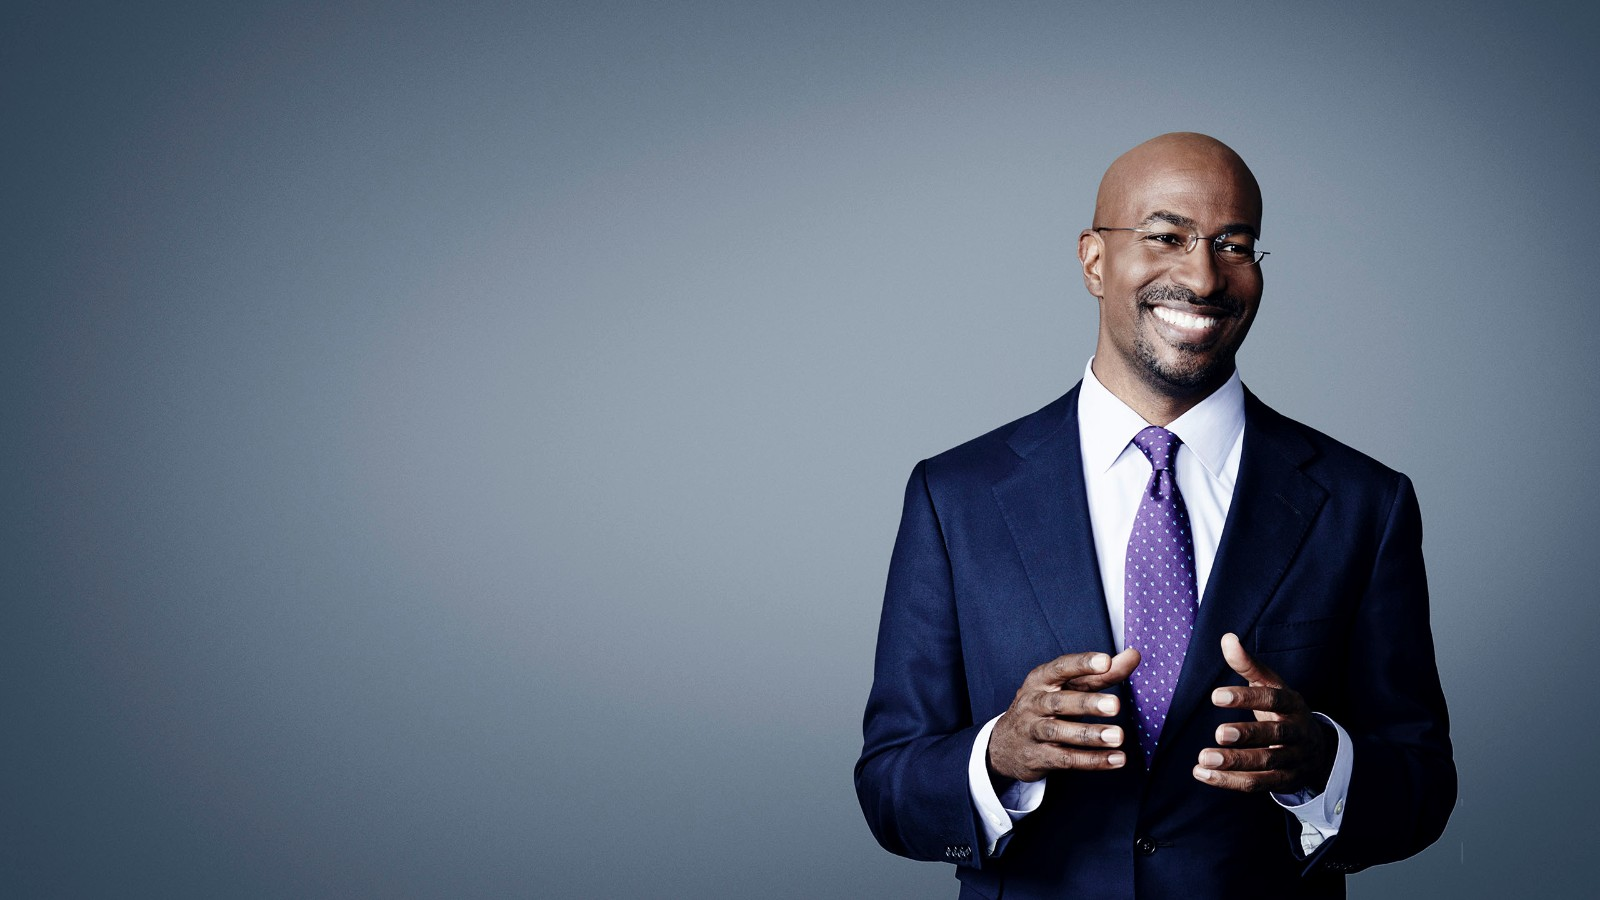 American news commentator Van Jones